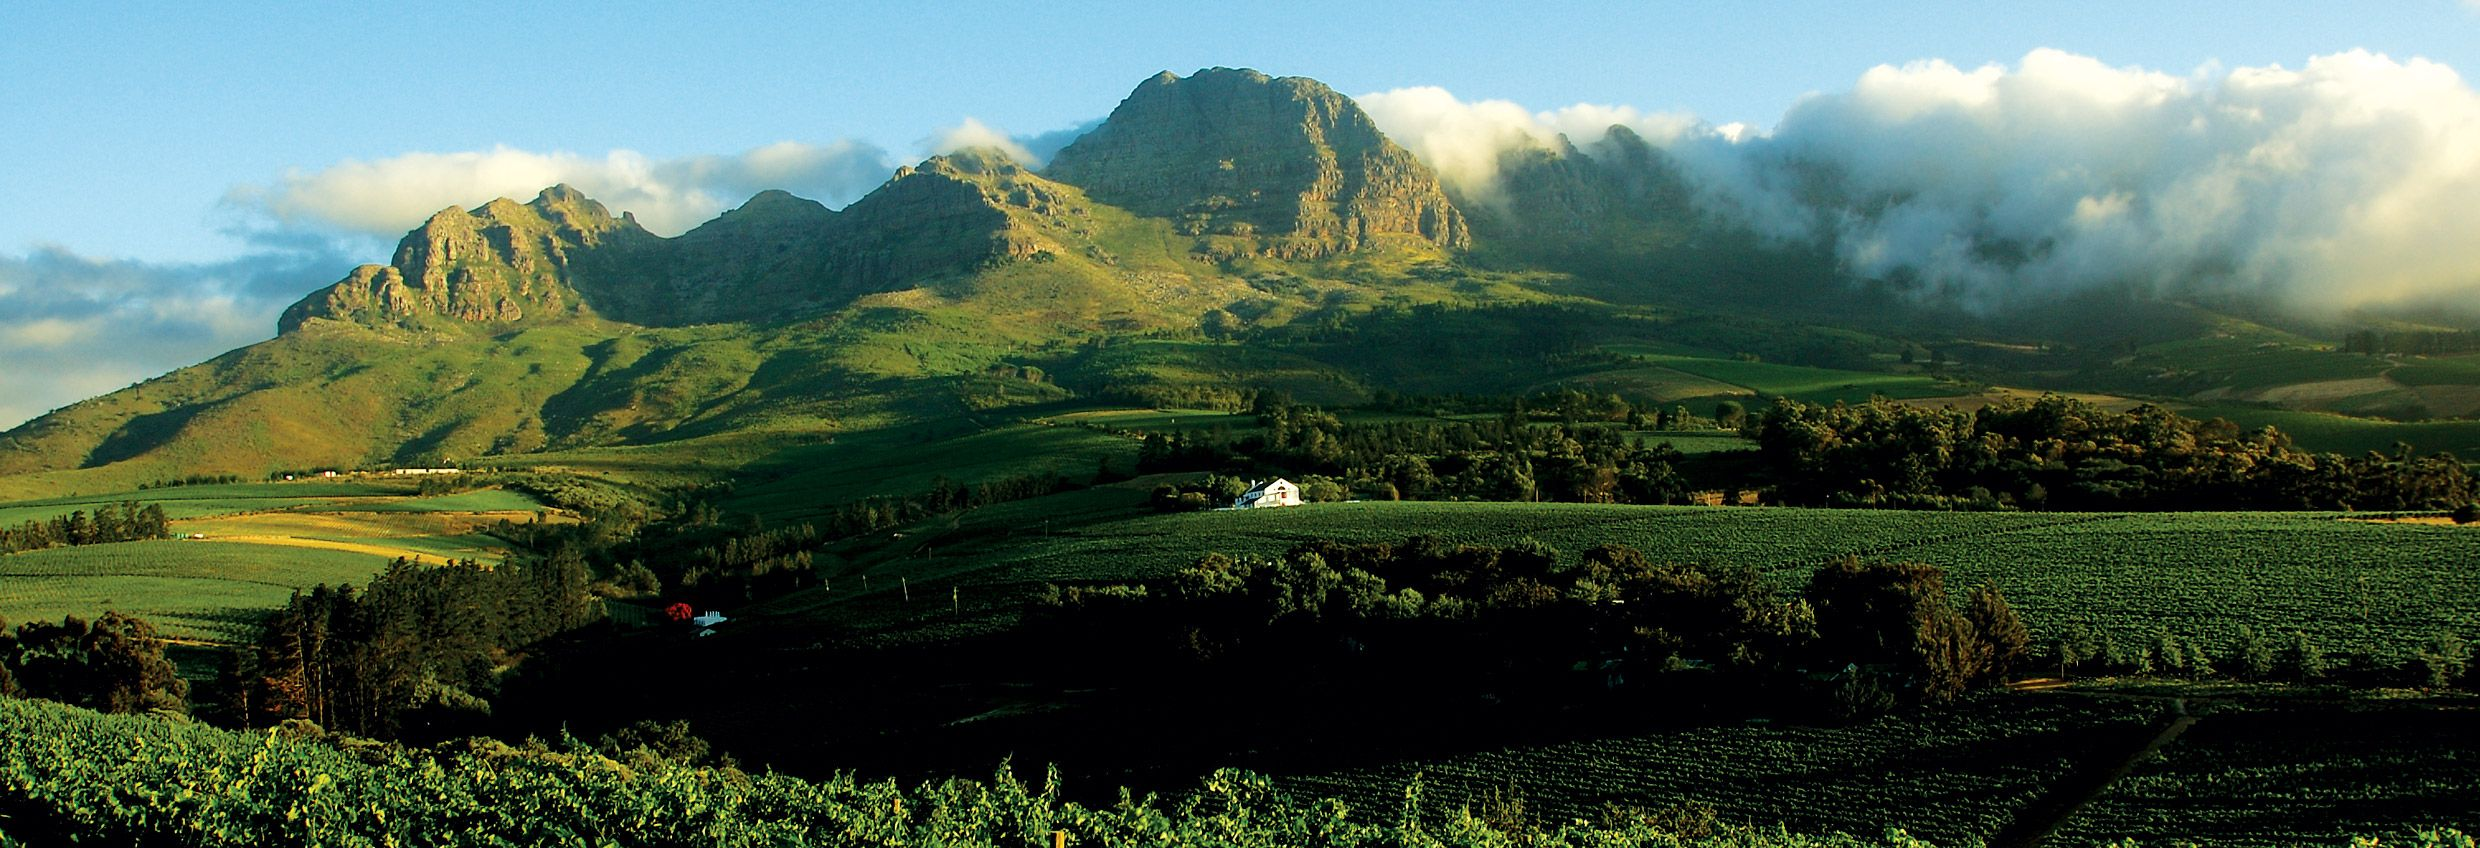 South Africa's Wine Legends: Hempies du Toit photo